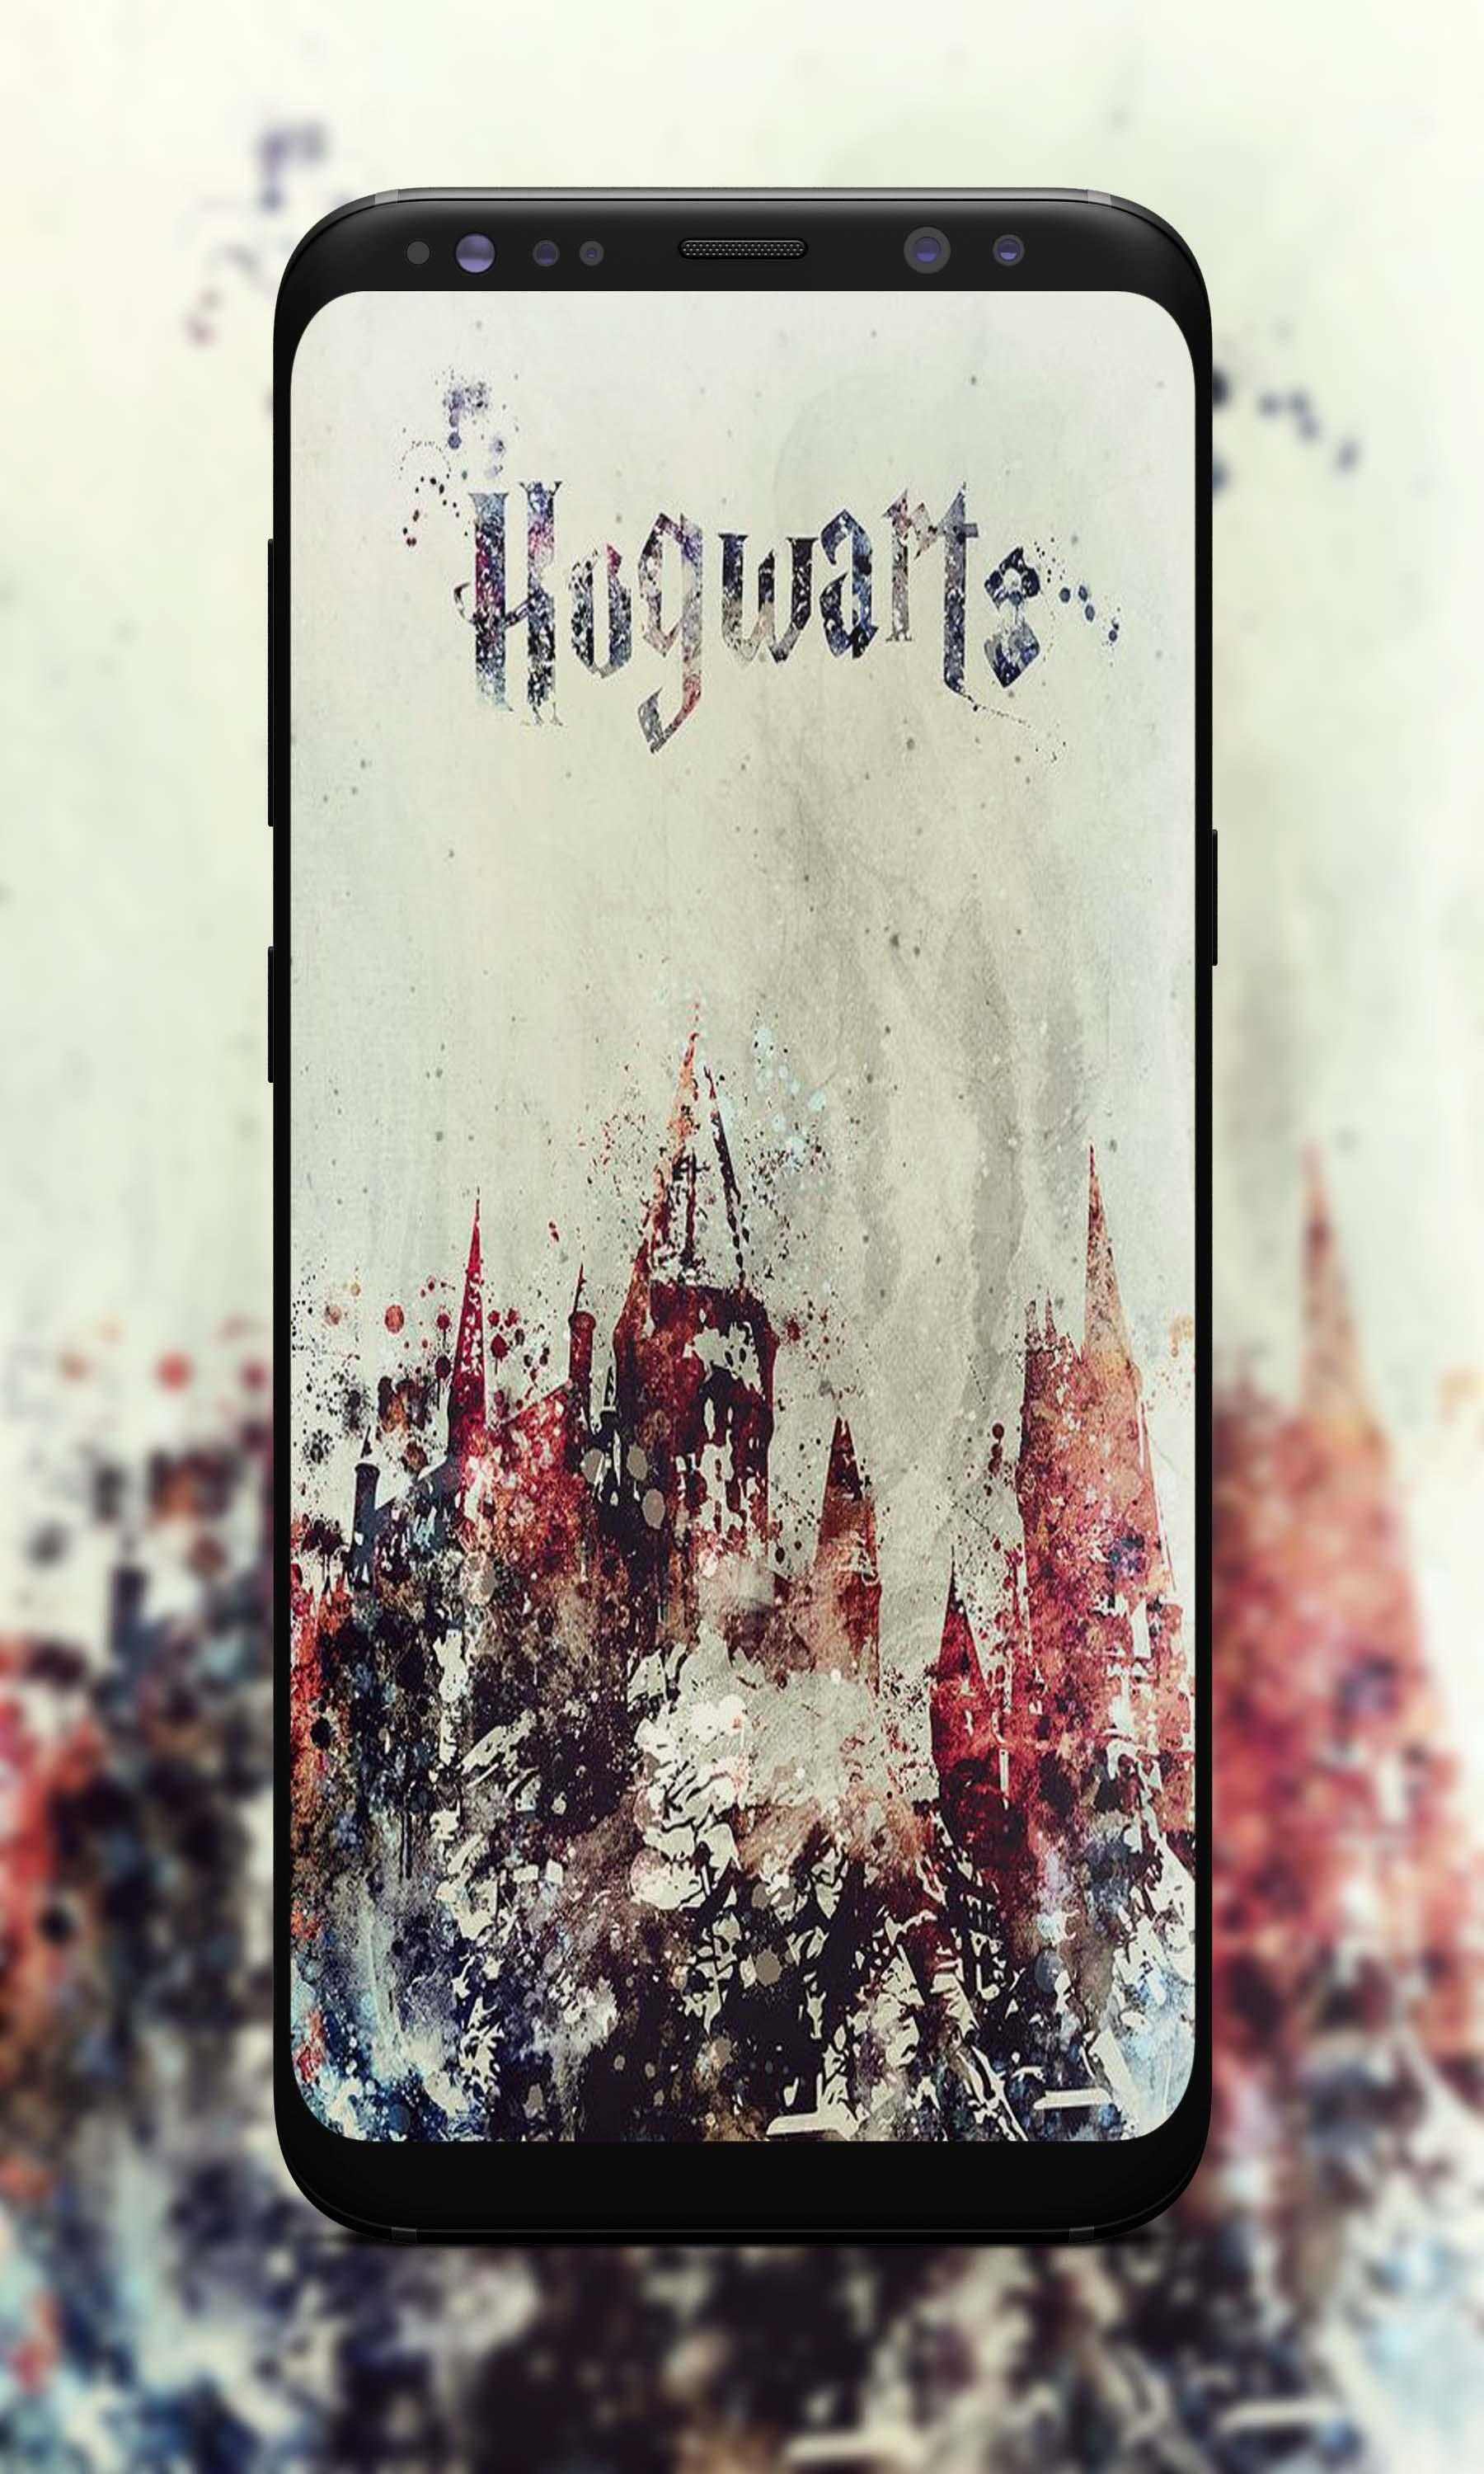 Harry Potter Wallpaper Hd For Android Apk Download